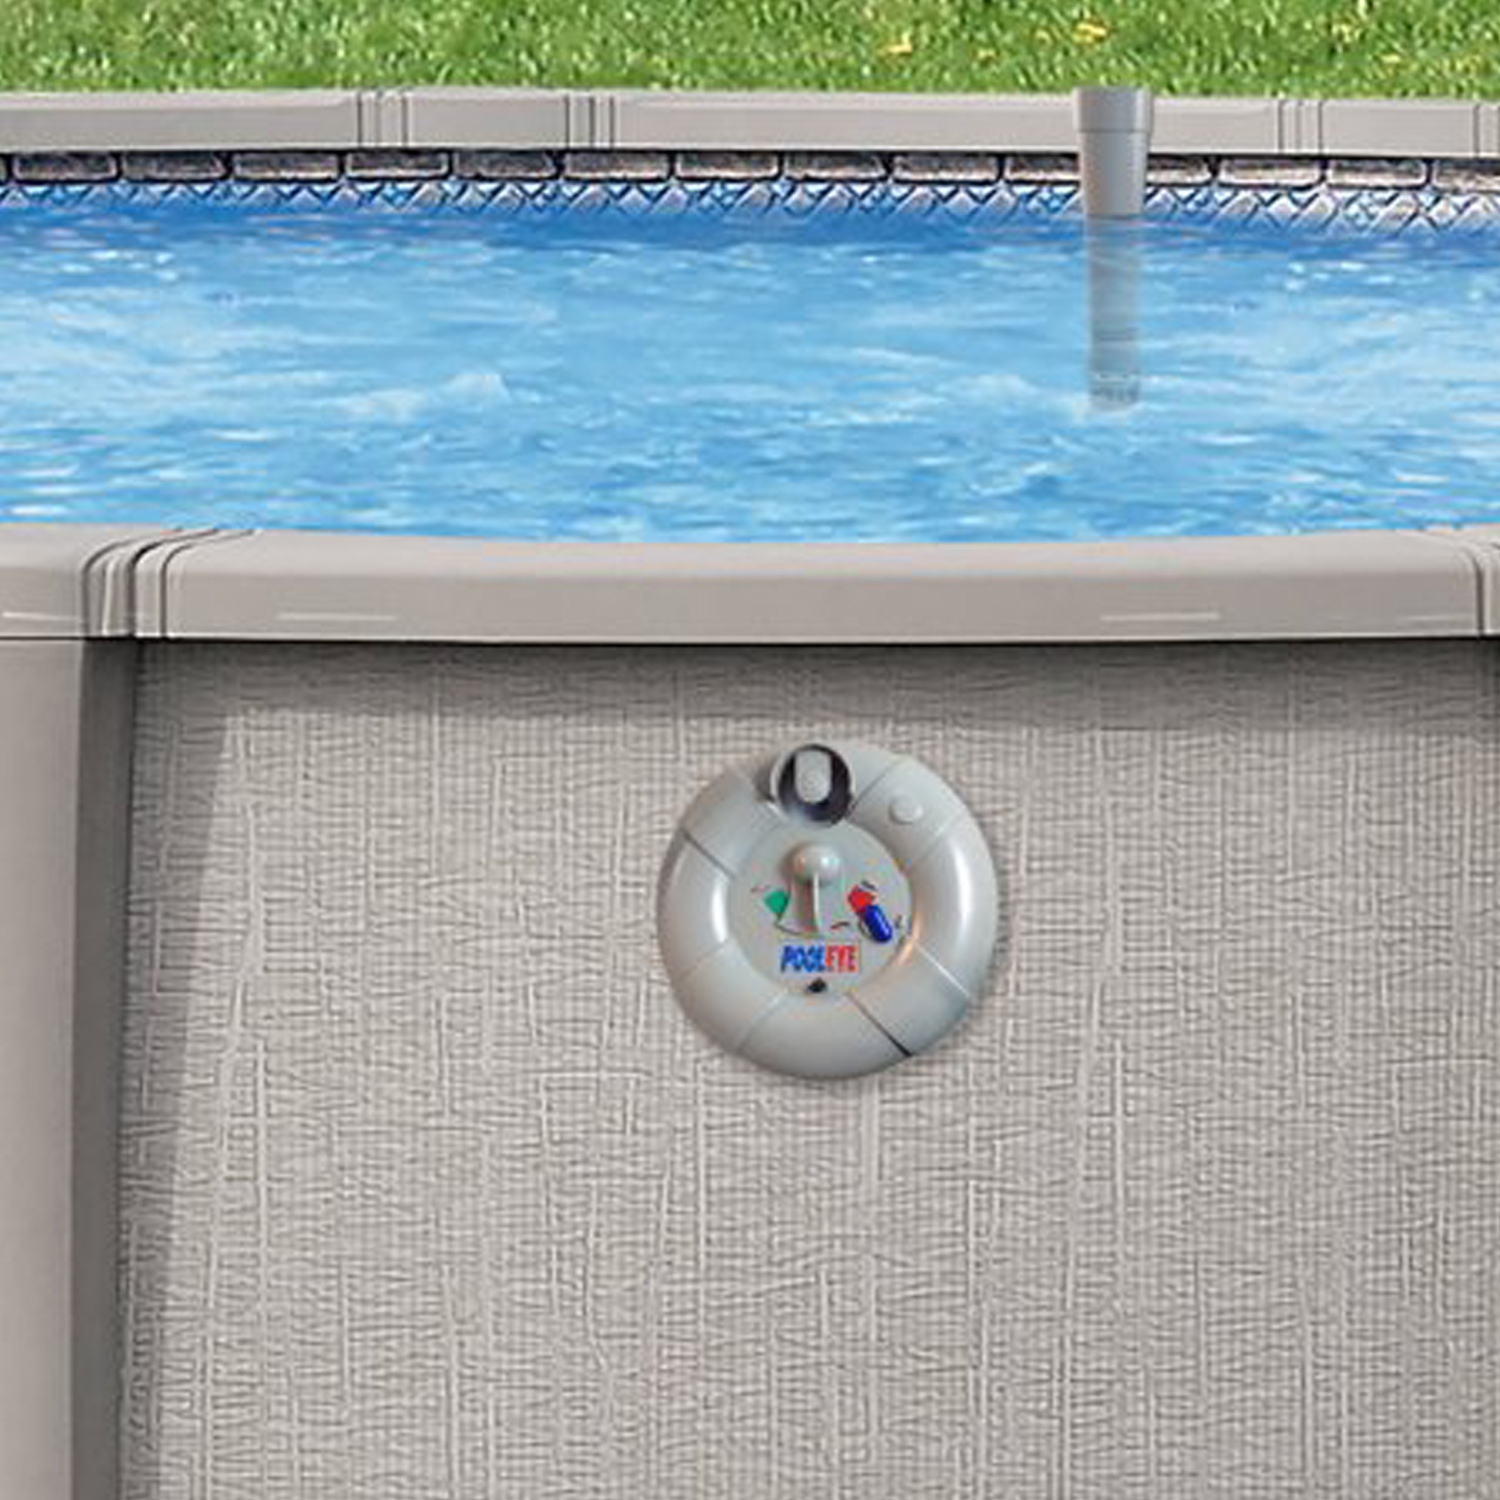 Details about Smartpool PE12 Pooleye Pool Alarm For Above-Ground Swimming  Pools